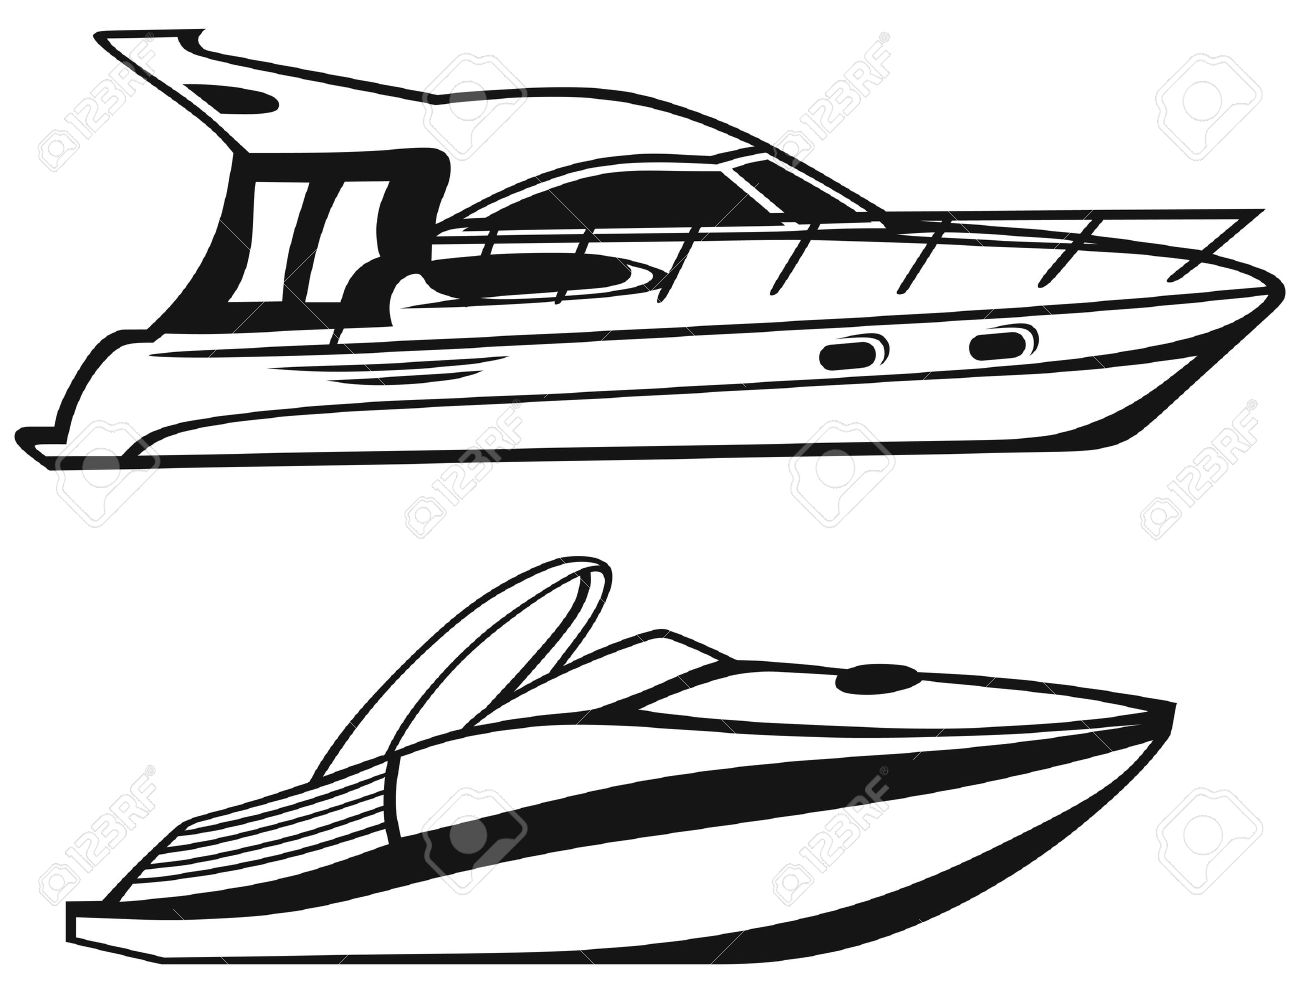 Nautical Clipart Black And White Luxury Yacht isolated on white